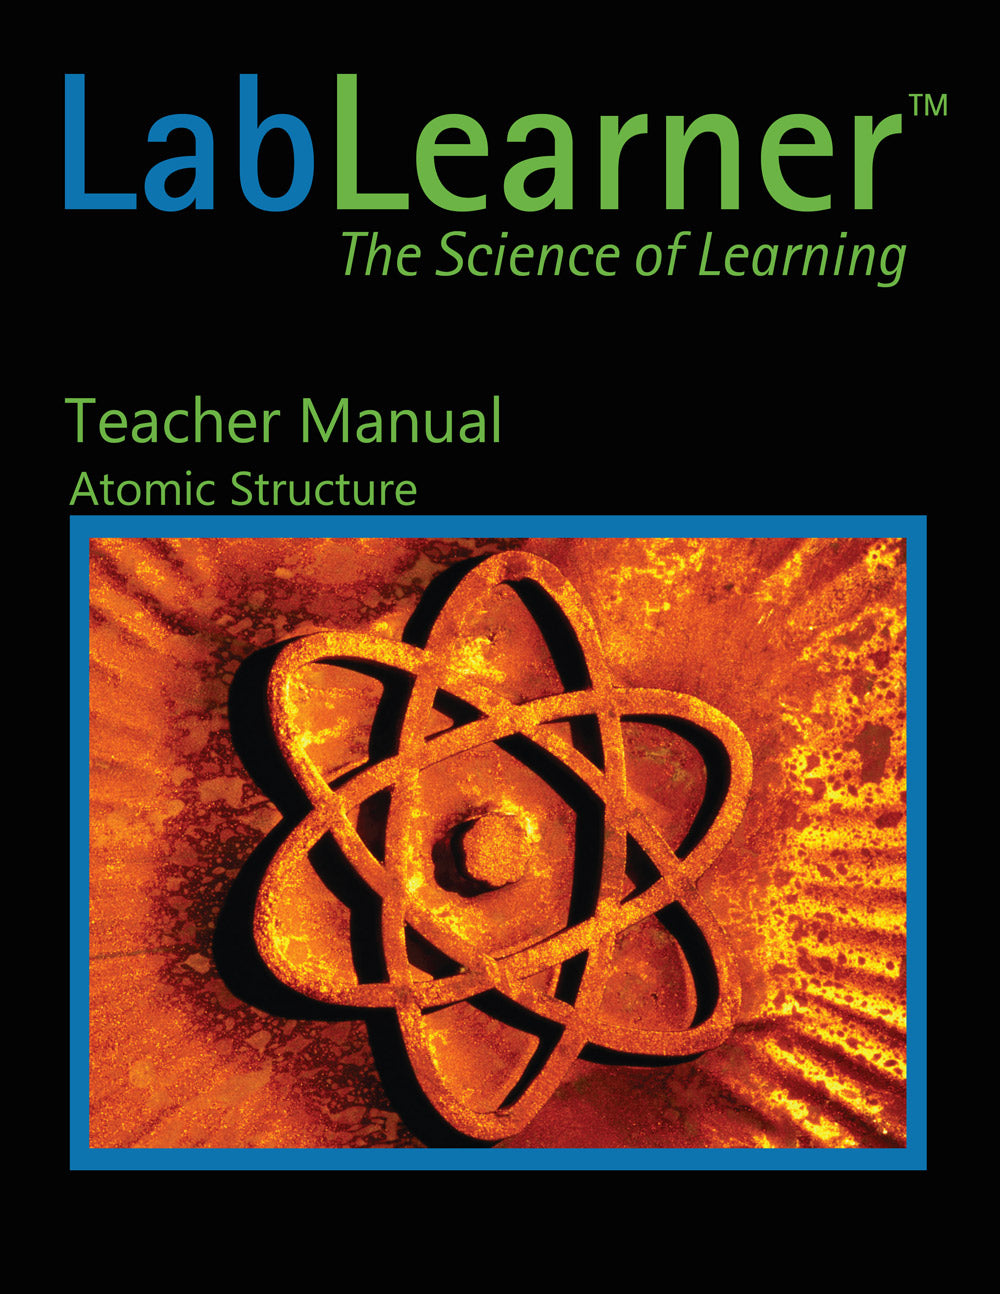 Atomic Structure - Teacher Manual